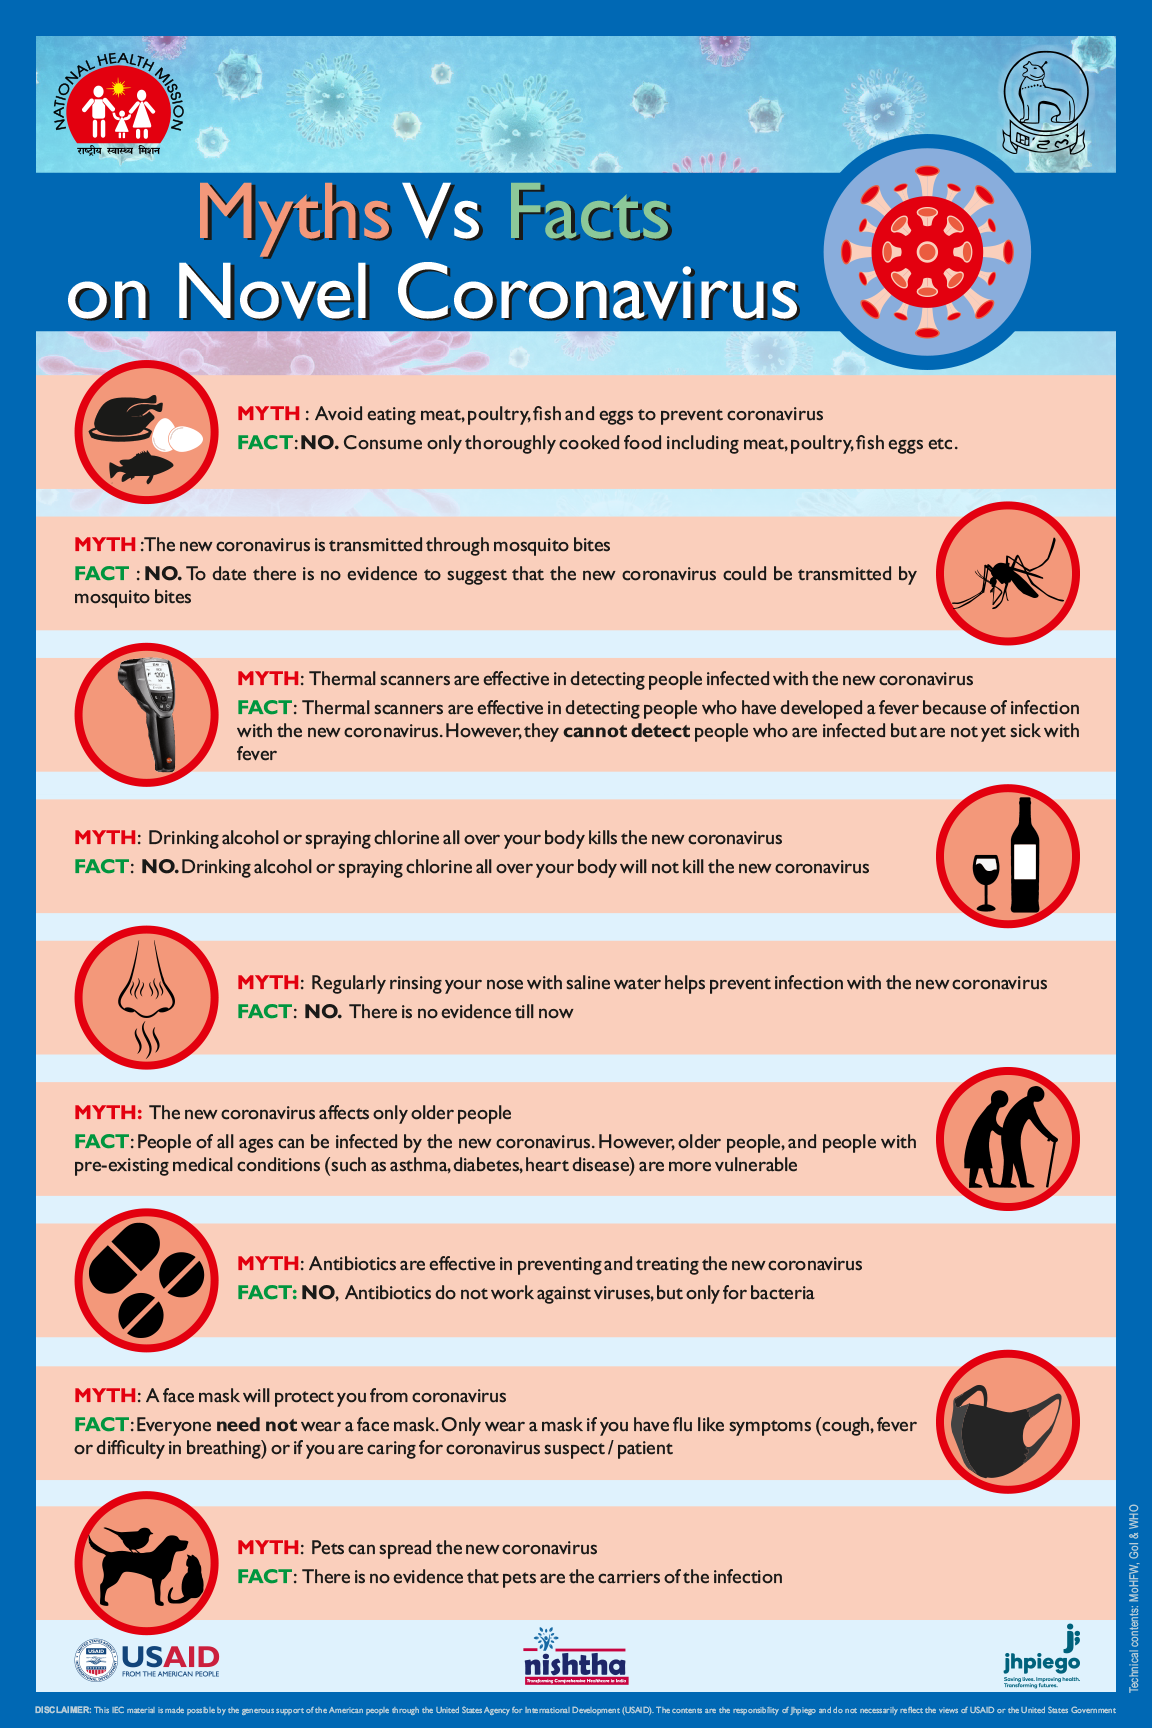 Myths Vs Facts on Novel Coronavirus